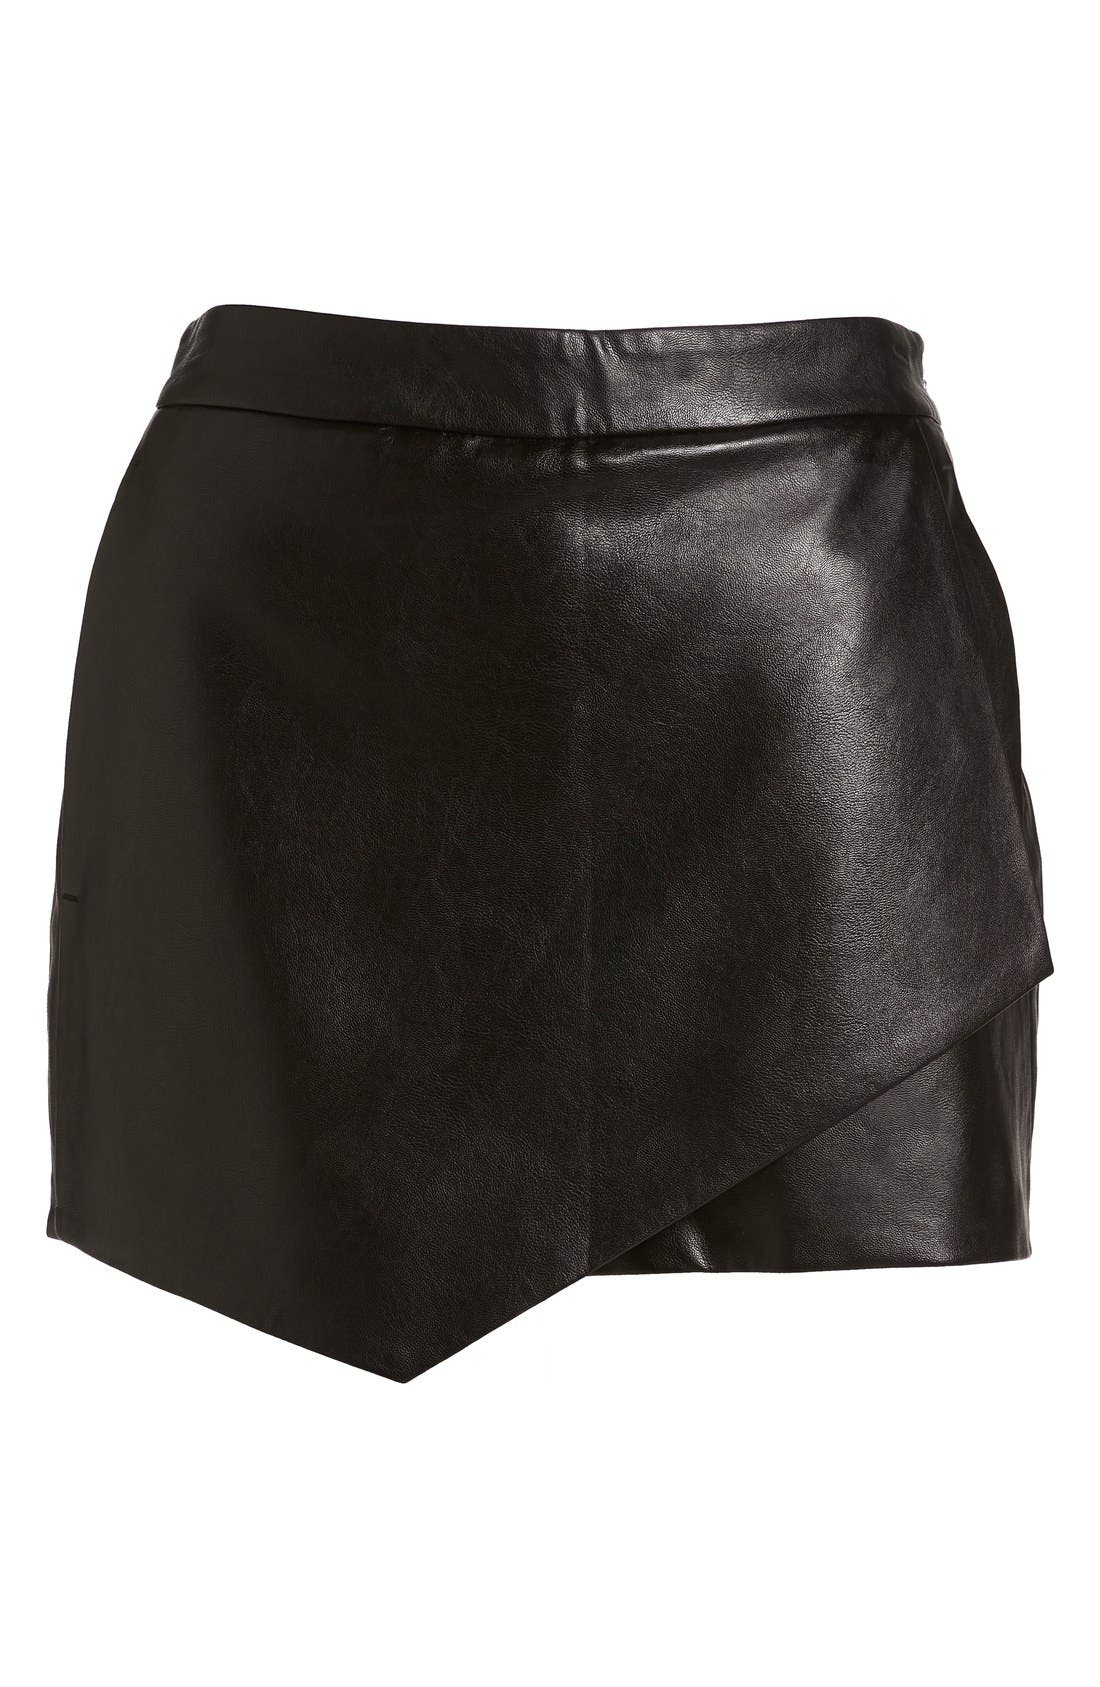 Alternate Image 1 Selected - izzue Faux Leather Mini Shorts (Women)